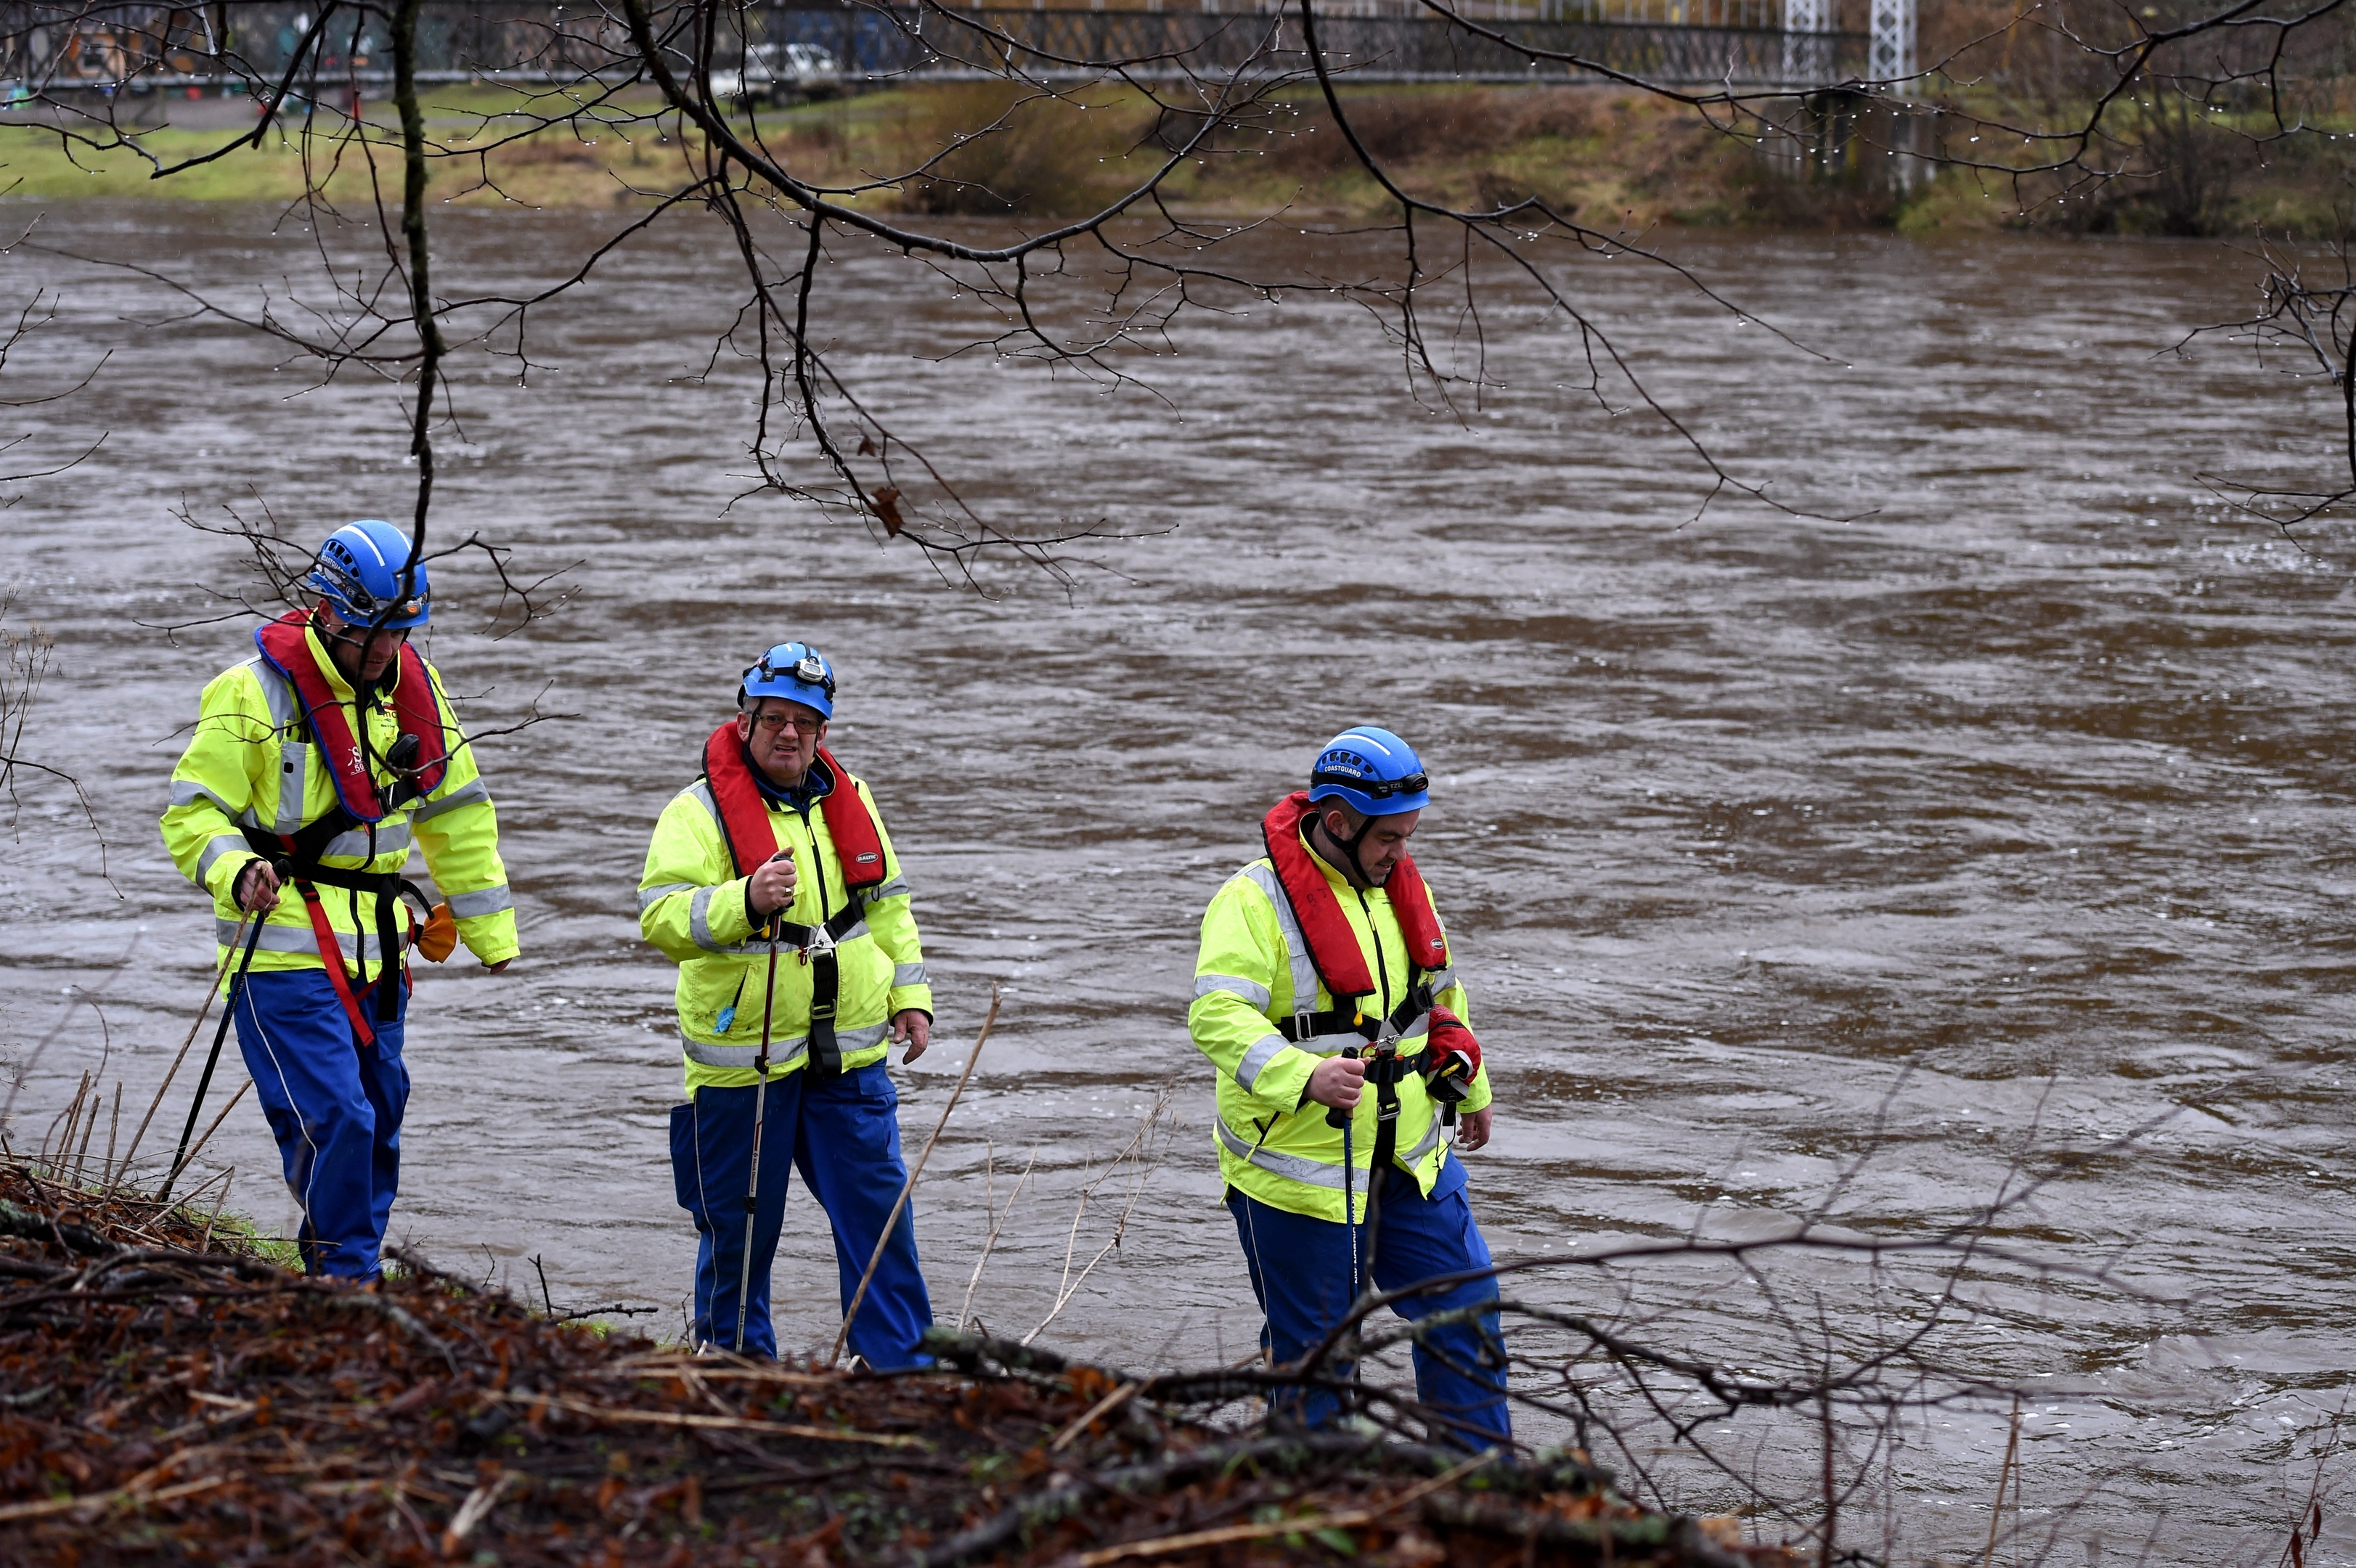 Search for missing Aberlour woman. Coastguards search along the River Spey at Aberlour. Picture by Gordon Lennox